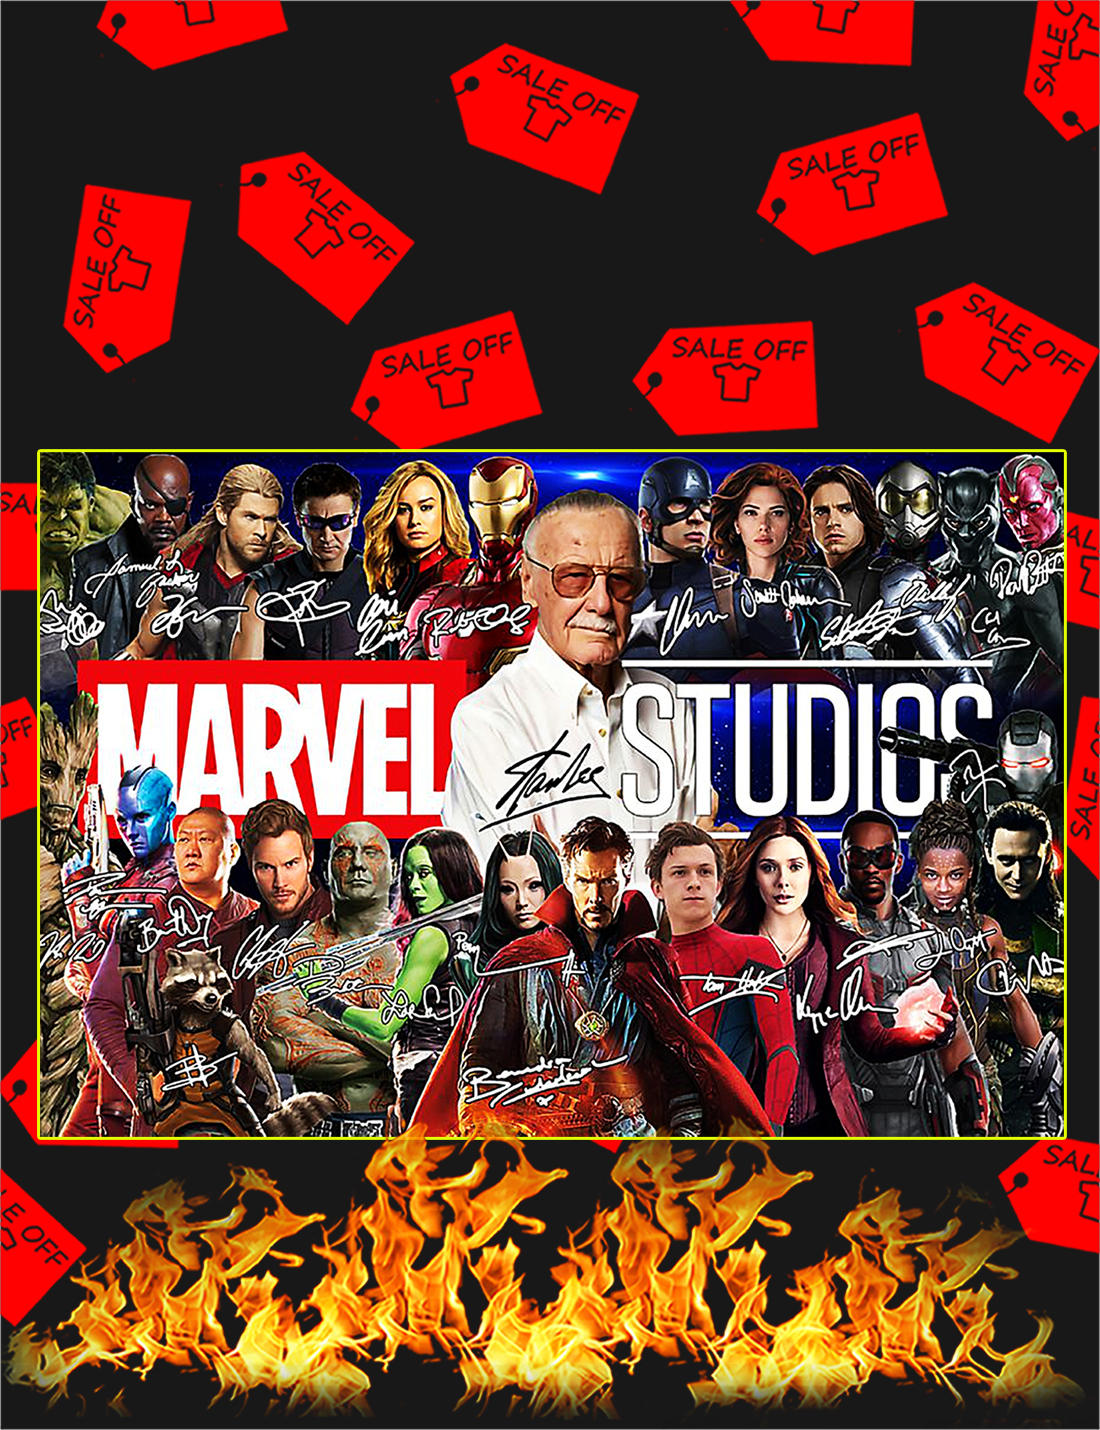 Stan lee marvel studios poster - A4